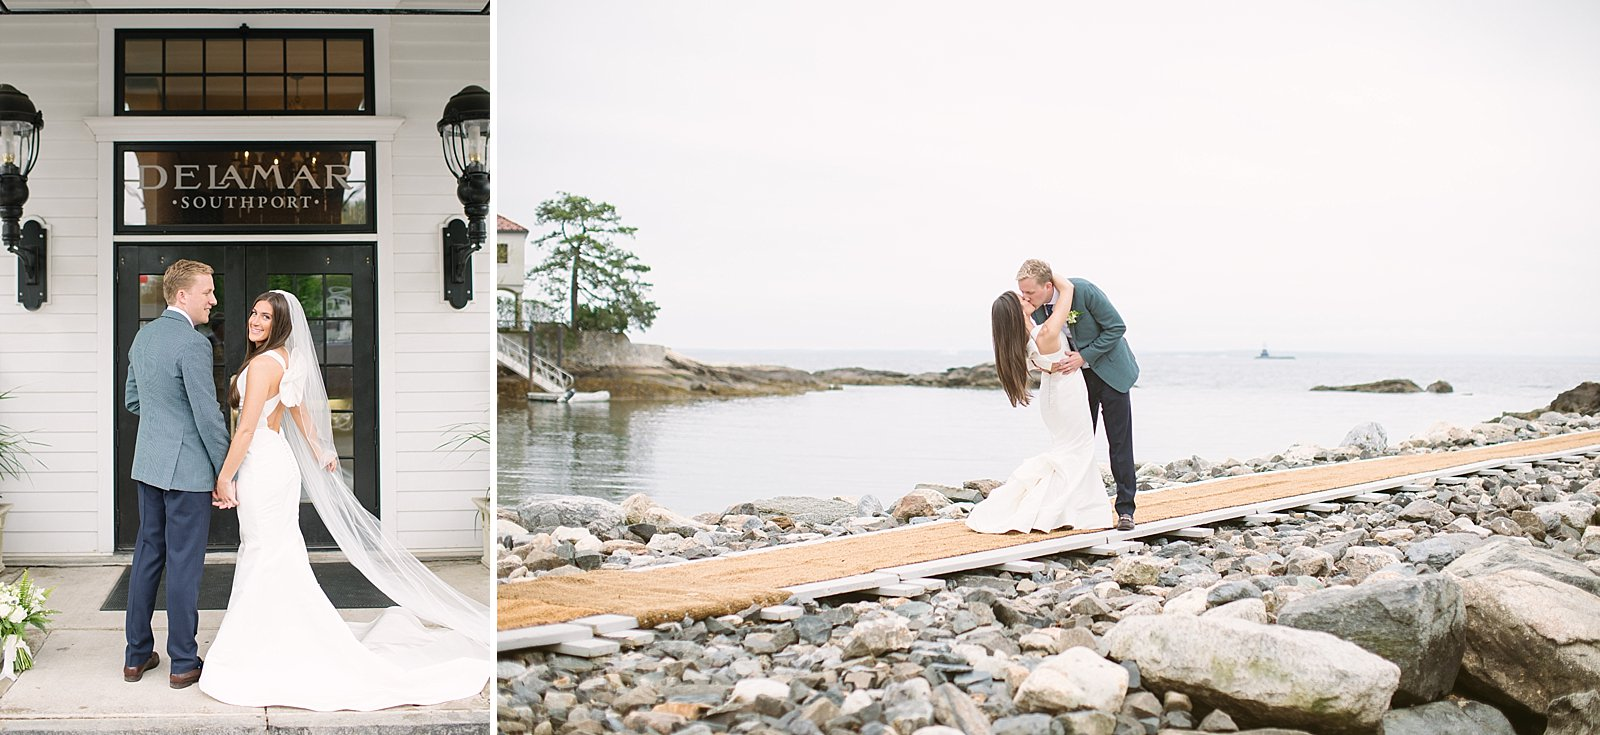 Wedding day photographed by New Jersey wedding photographer Ashley Mac Photographs